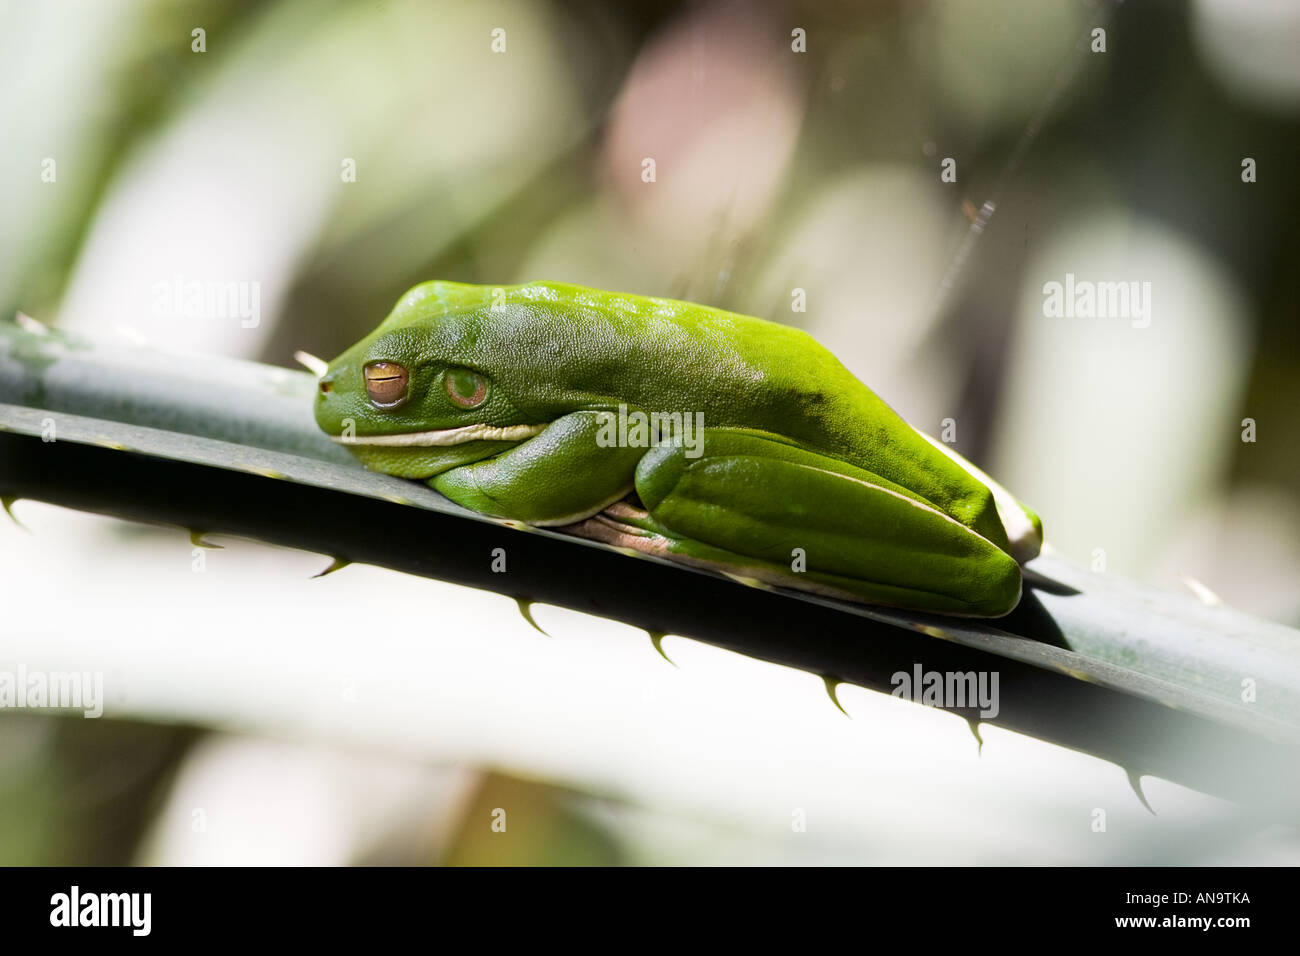 White Lipped Green Tree Frog on palm leaf Daintree Rainforest Queenland Australia - Stock Image